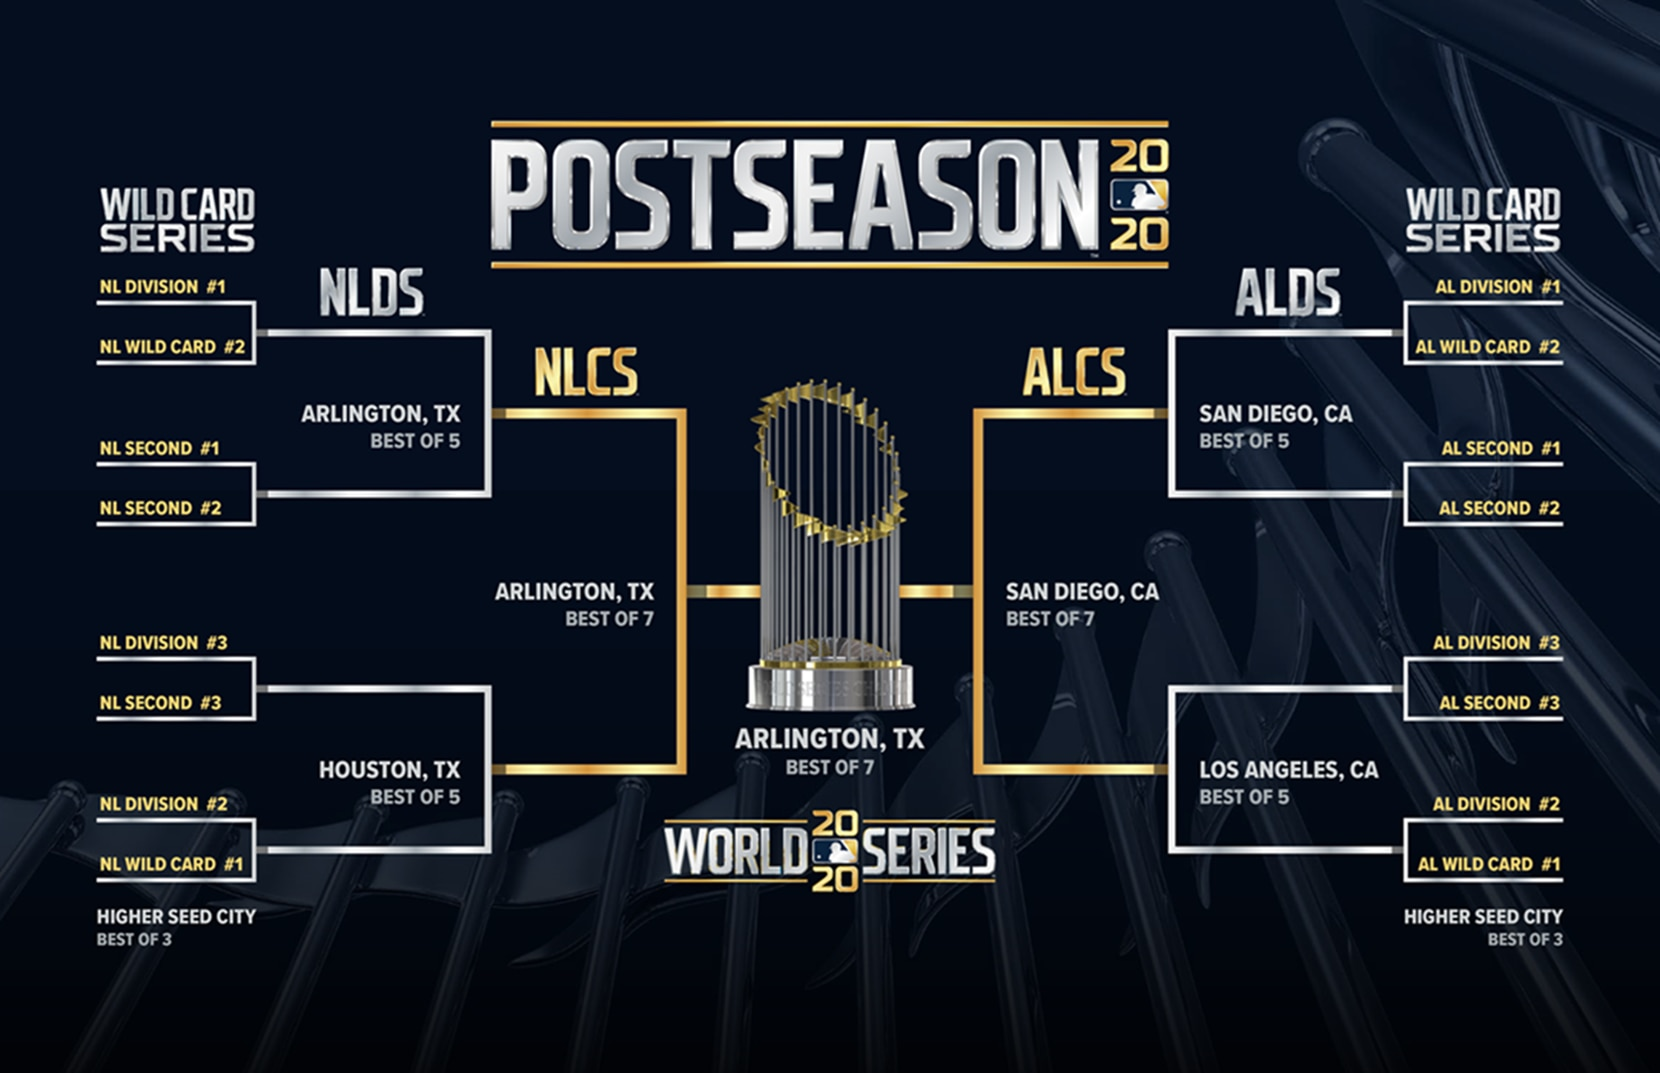 MLB's 2020 playoff bracket.